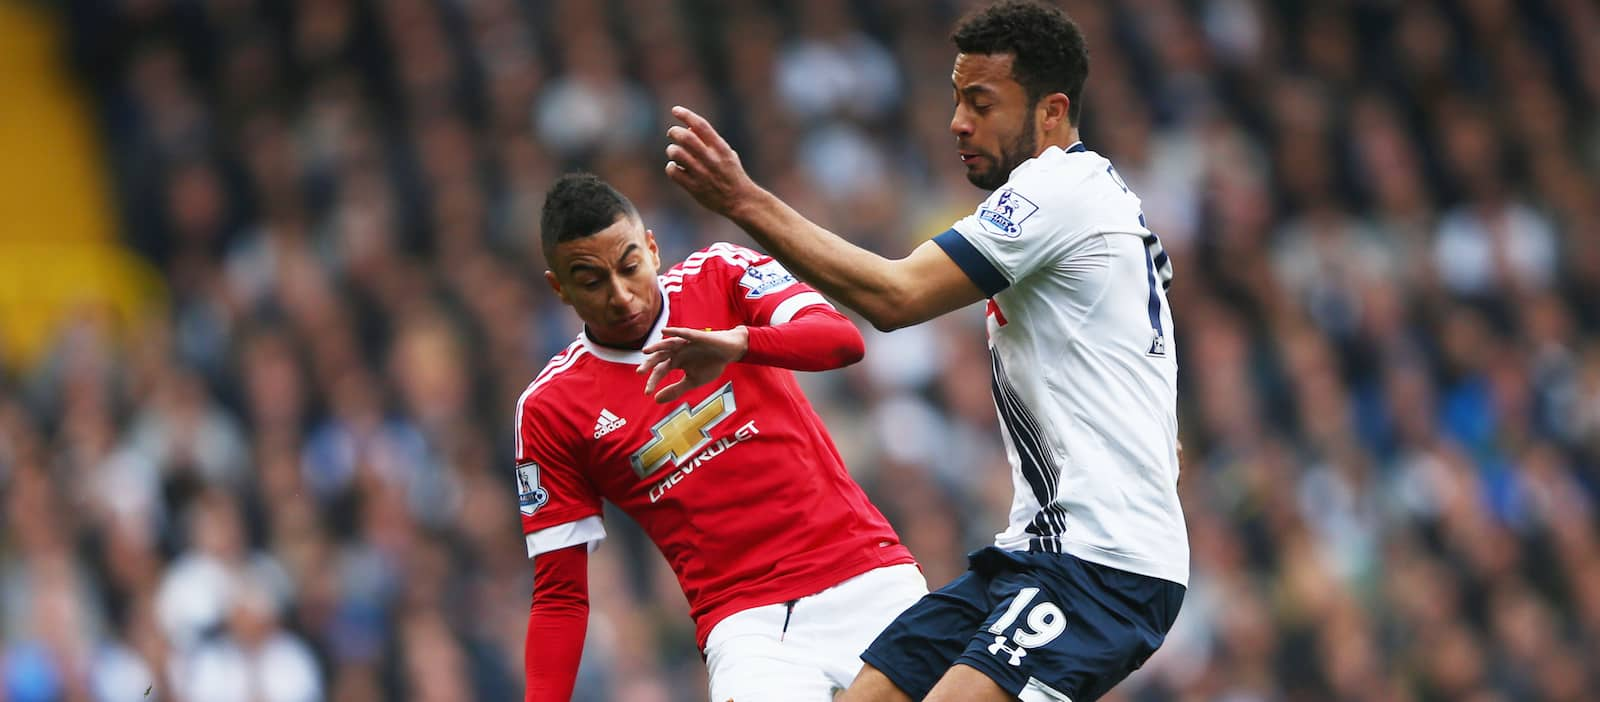 Jesse Lingard puts in invisible performance against Tottenham Hotspur